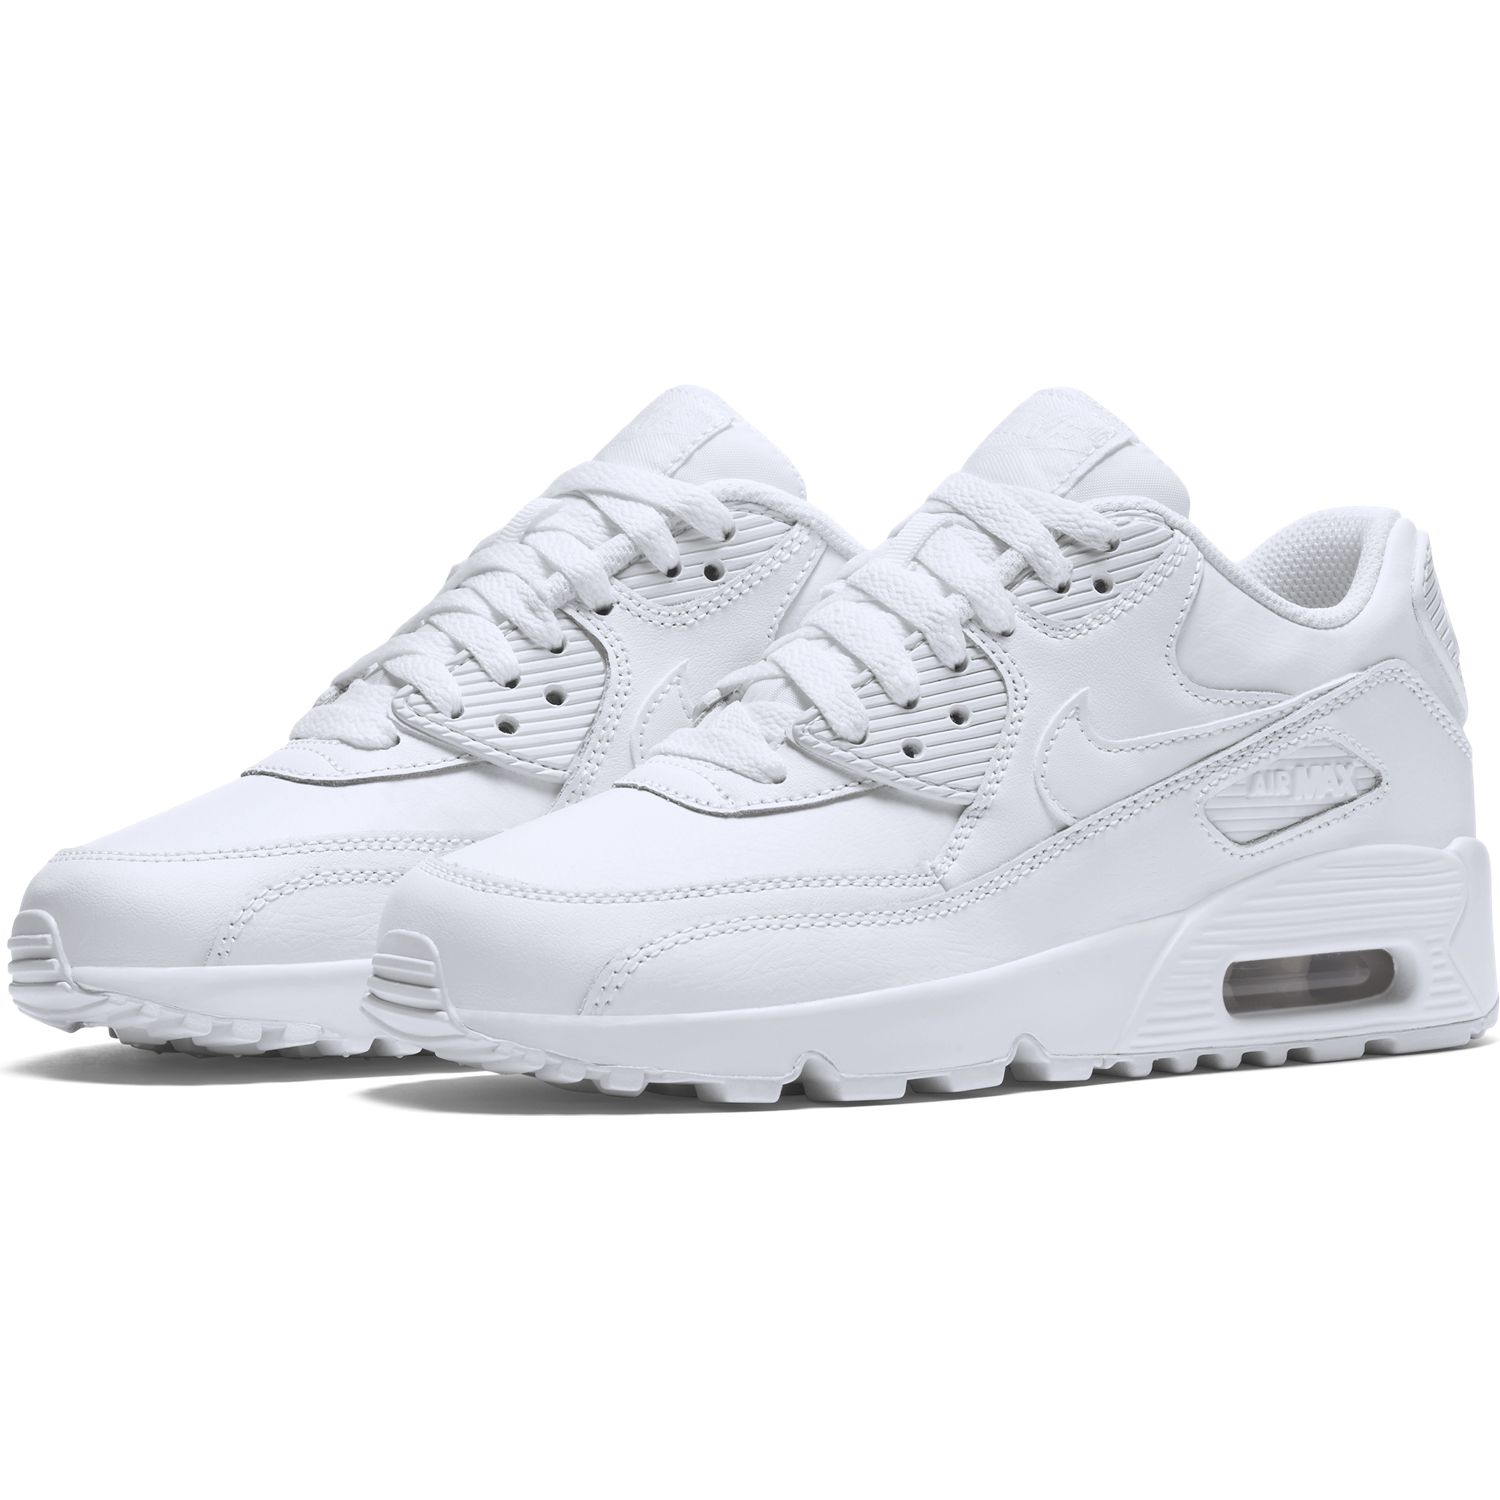 sports shoes c13d2 679df BUTY JUNIOR LIFESTYLE NIKE AIR MAX 90 LEATHER BIAŁE 833412-100 . ...